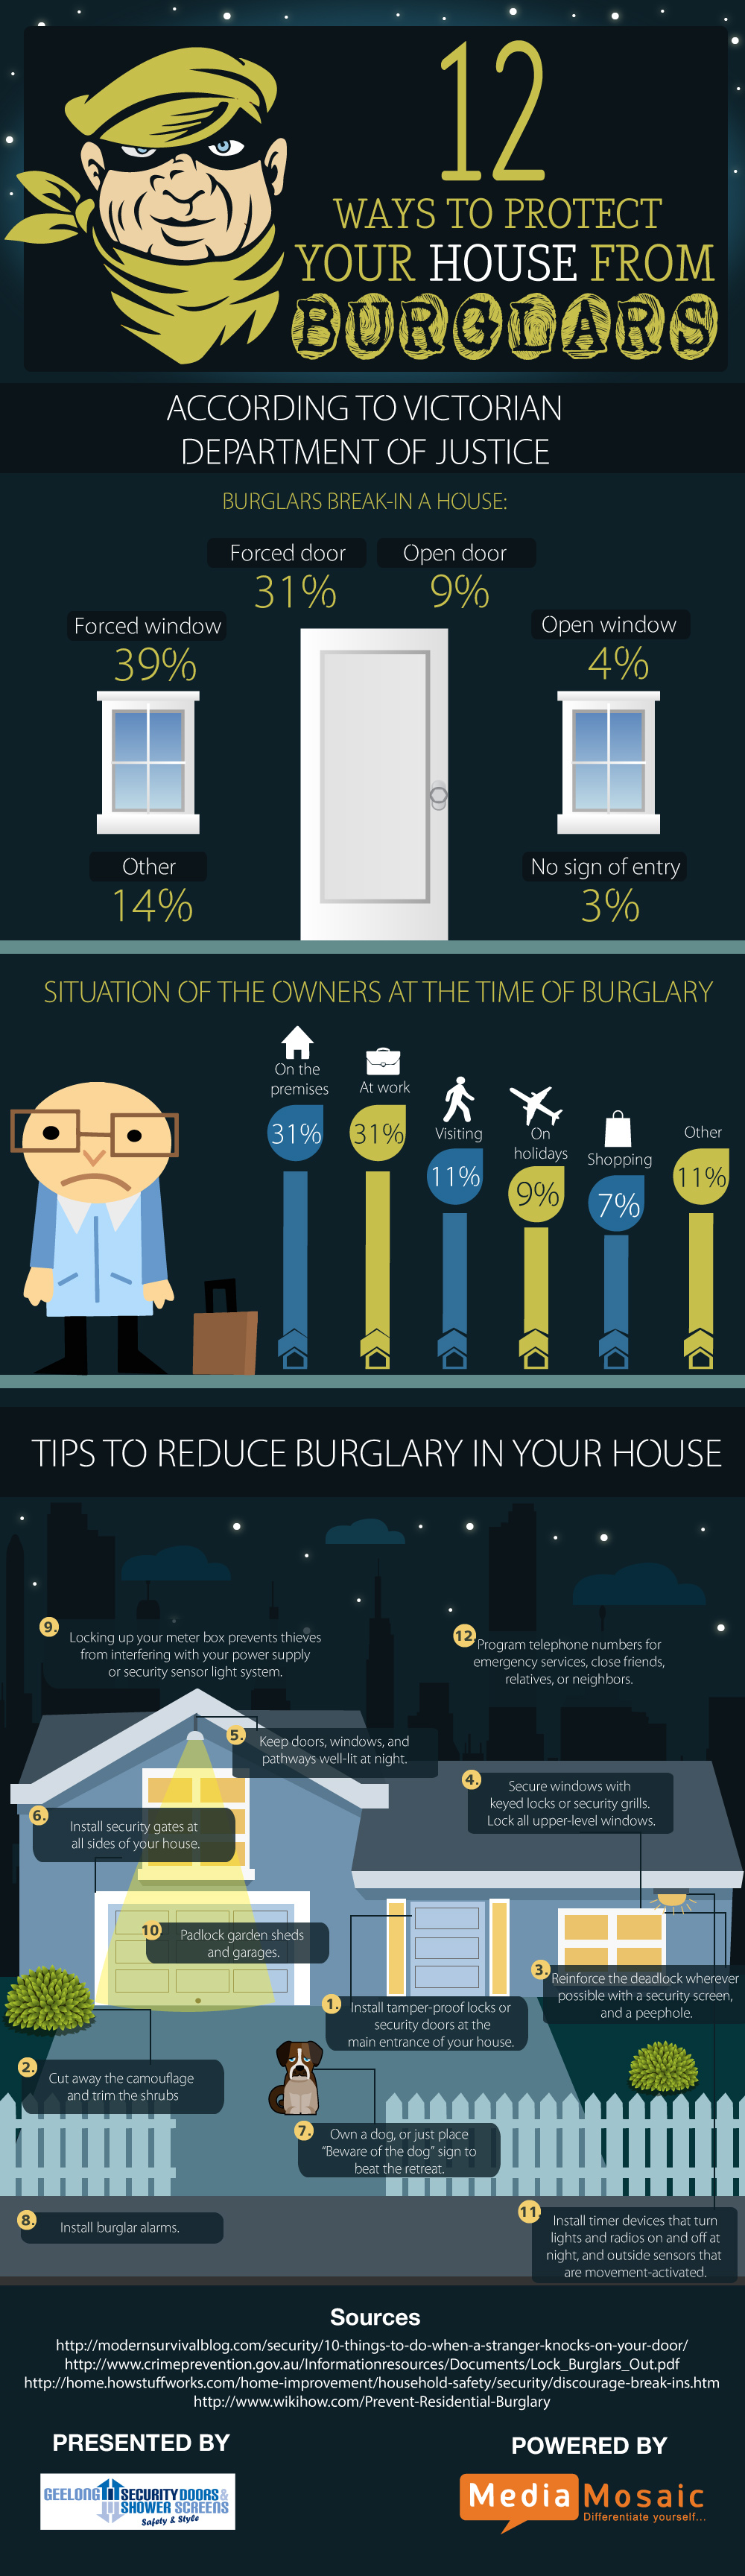 12-ways-to-protect-your-house-from-burglars